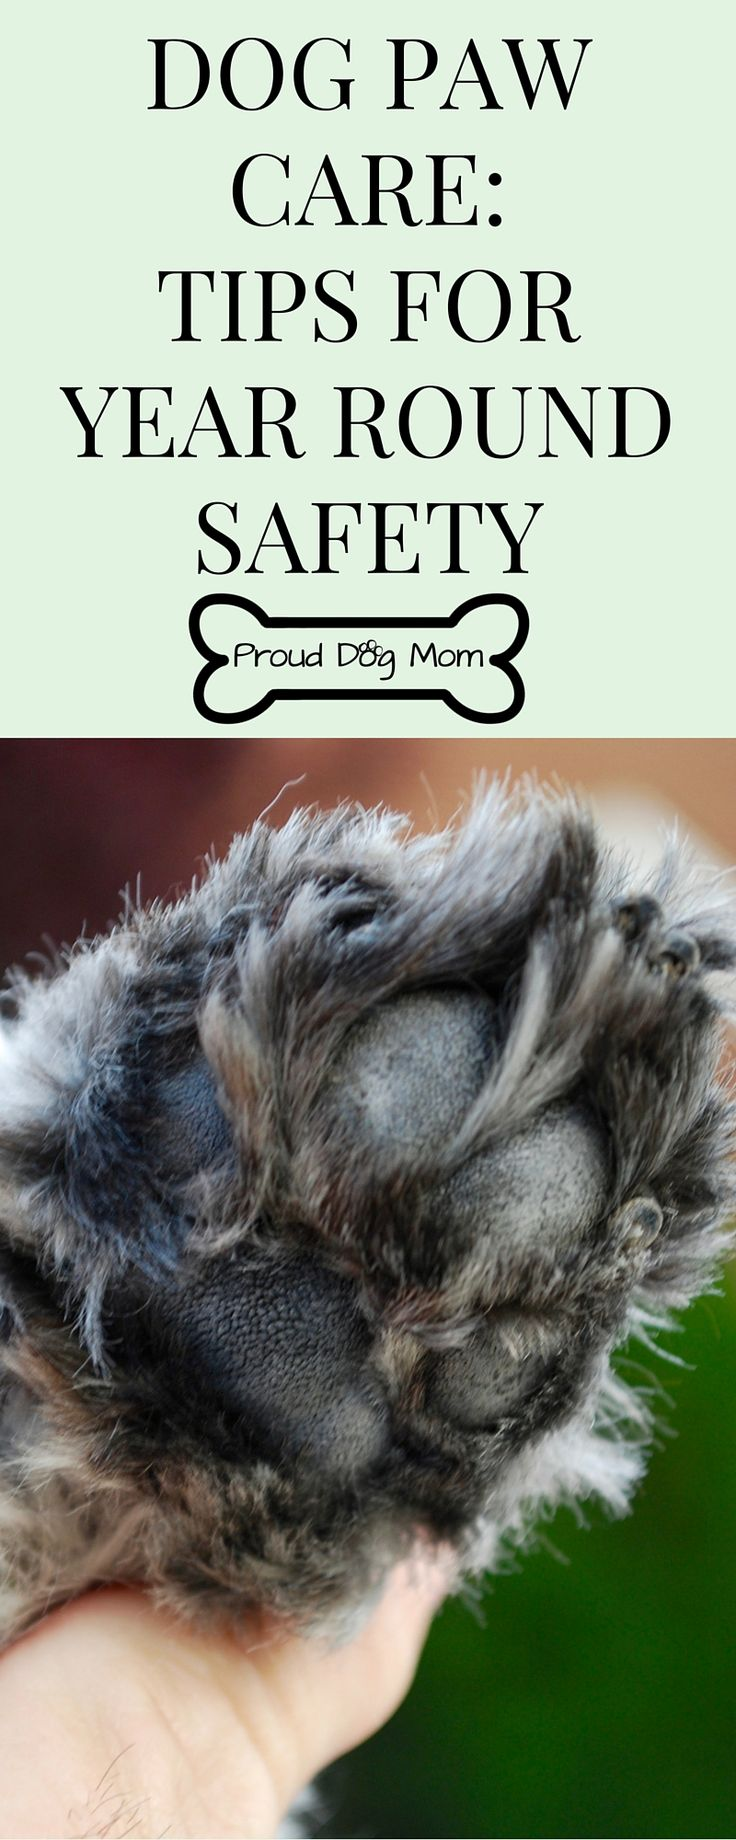 Dog Paw Care: Tips For Year Round Safety   Dog Health Tips   Dog Grooming Tips  